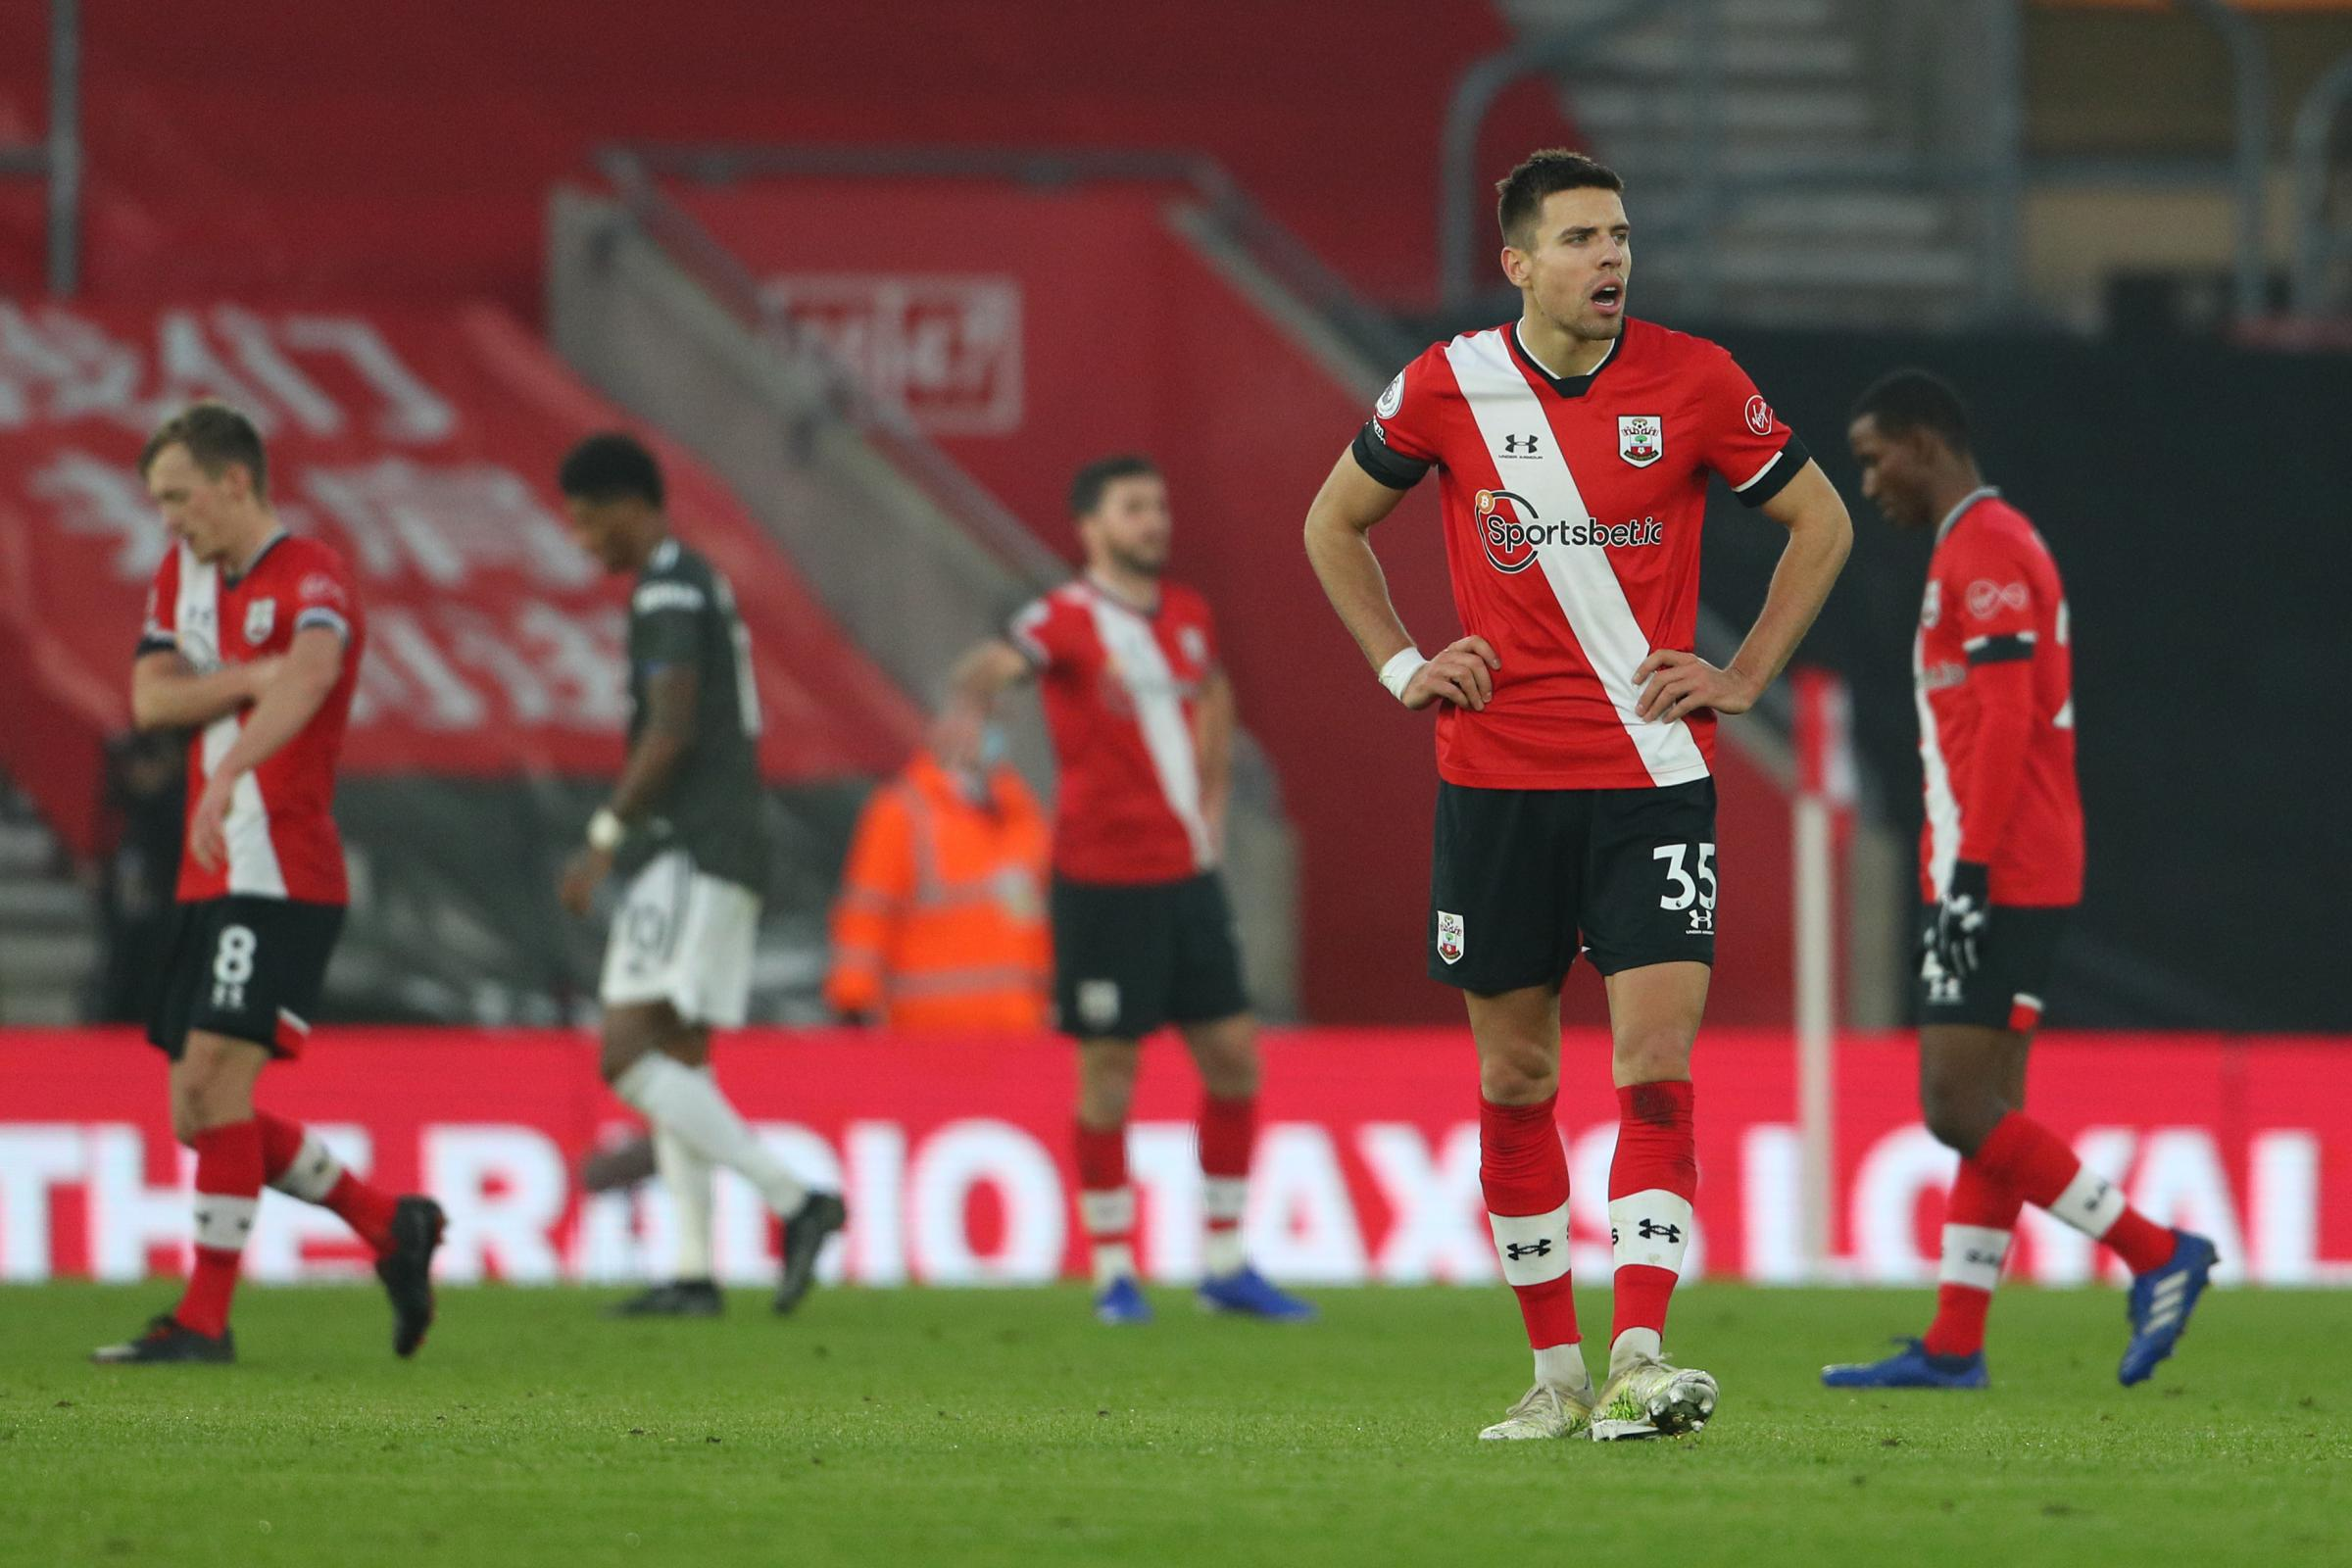 'Hard work will be the key now' - Bednarek wants Saints to react after agonising United setback